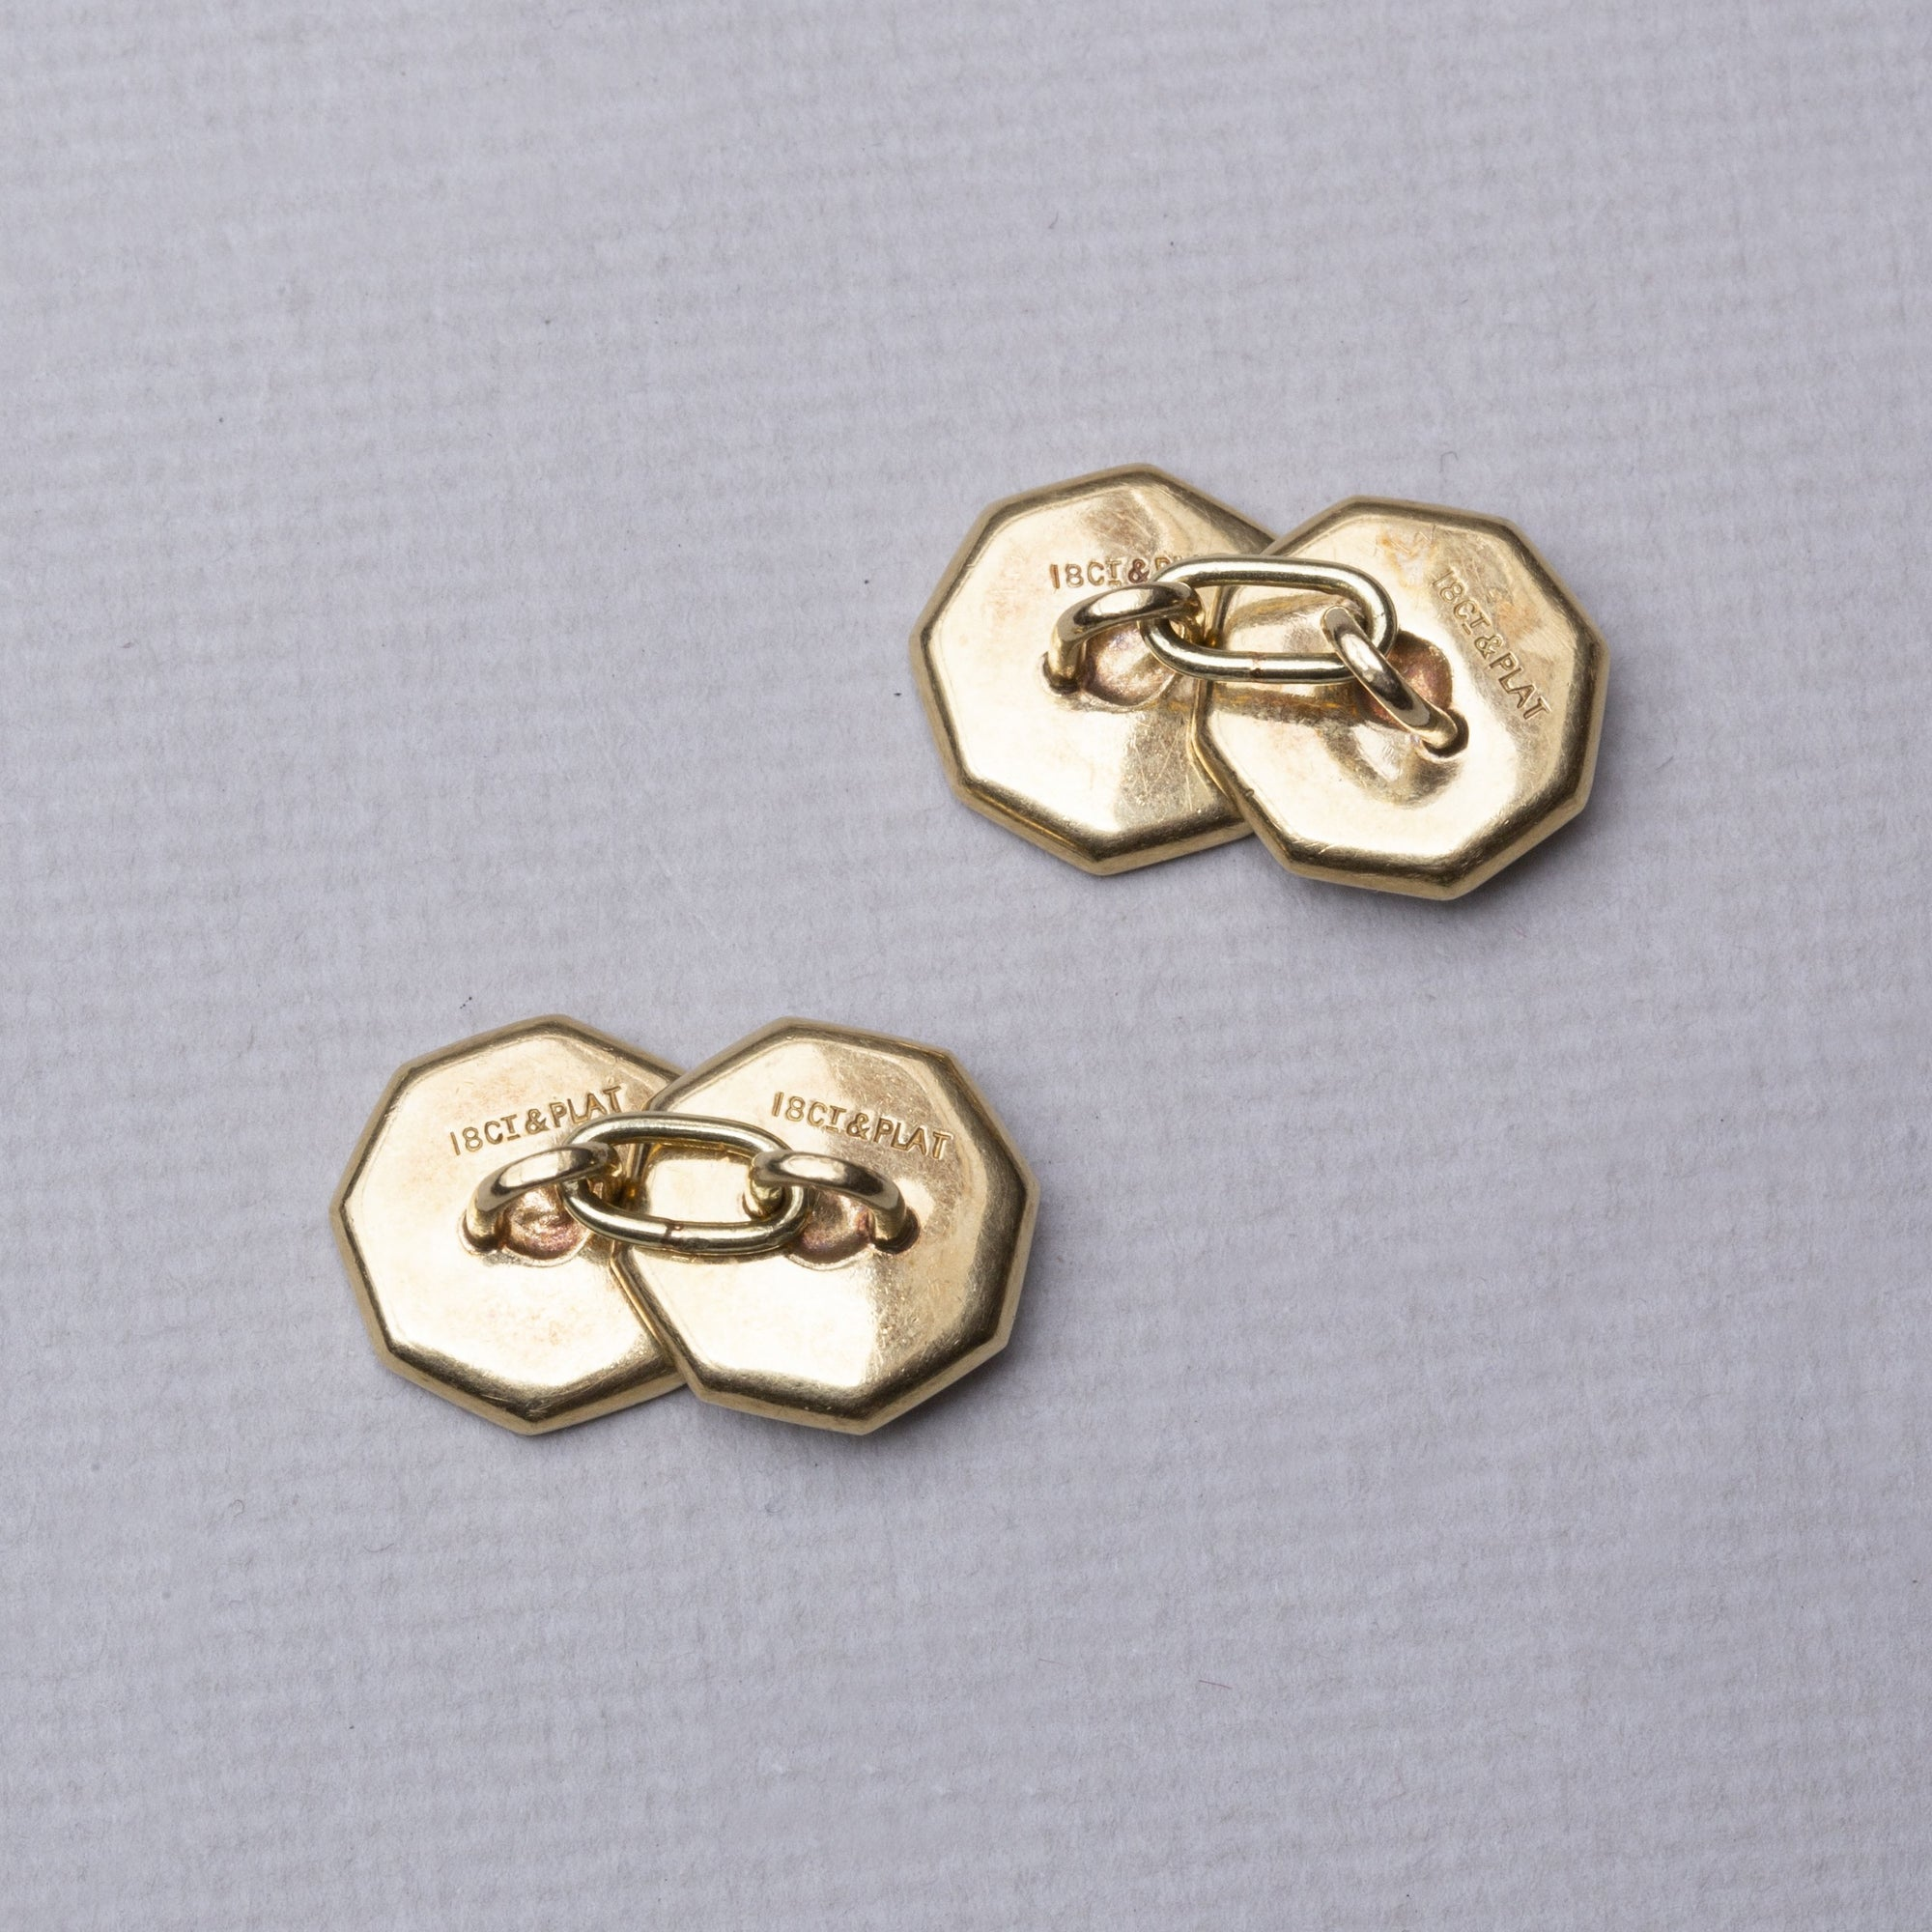 Vintage Platinum and 18ct Gold Cufflinks with Mother of Pearl